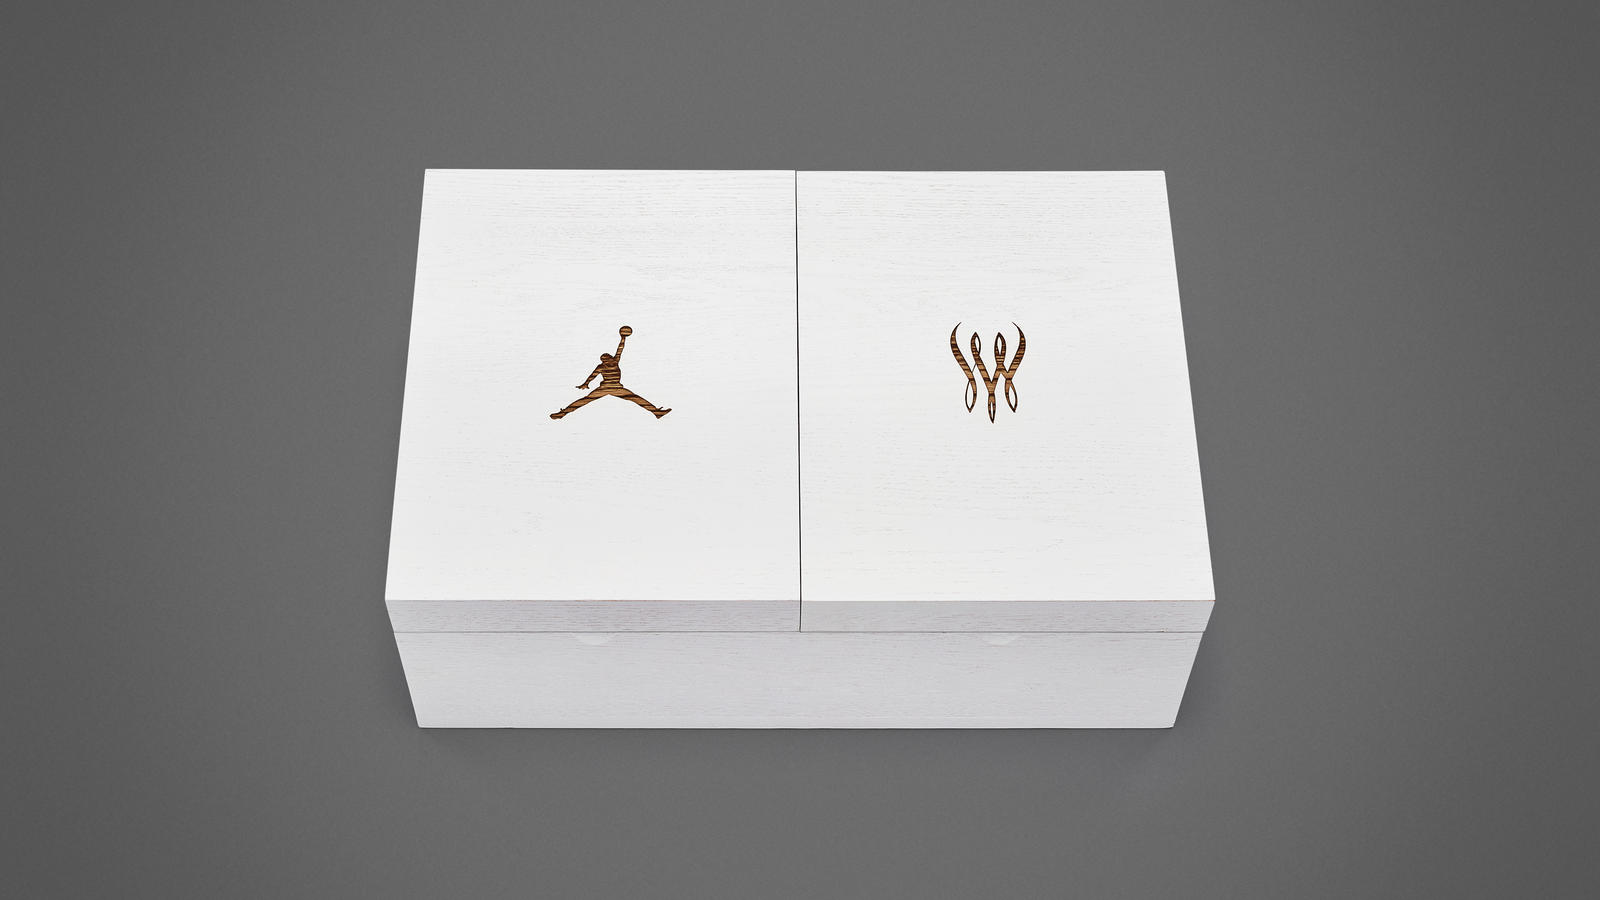 nike and jordan brand celebrate serena s 23 victory nike news